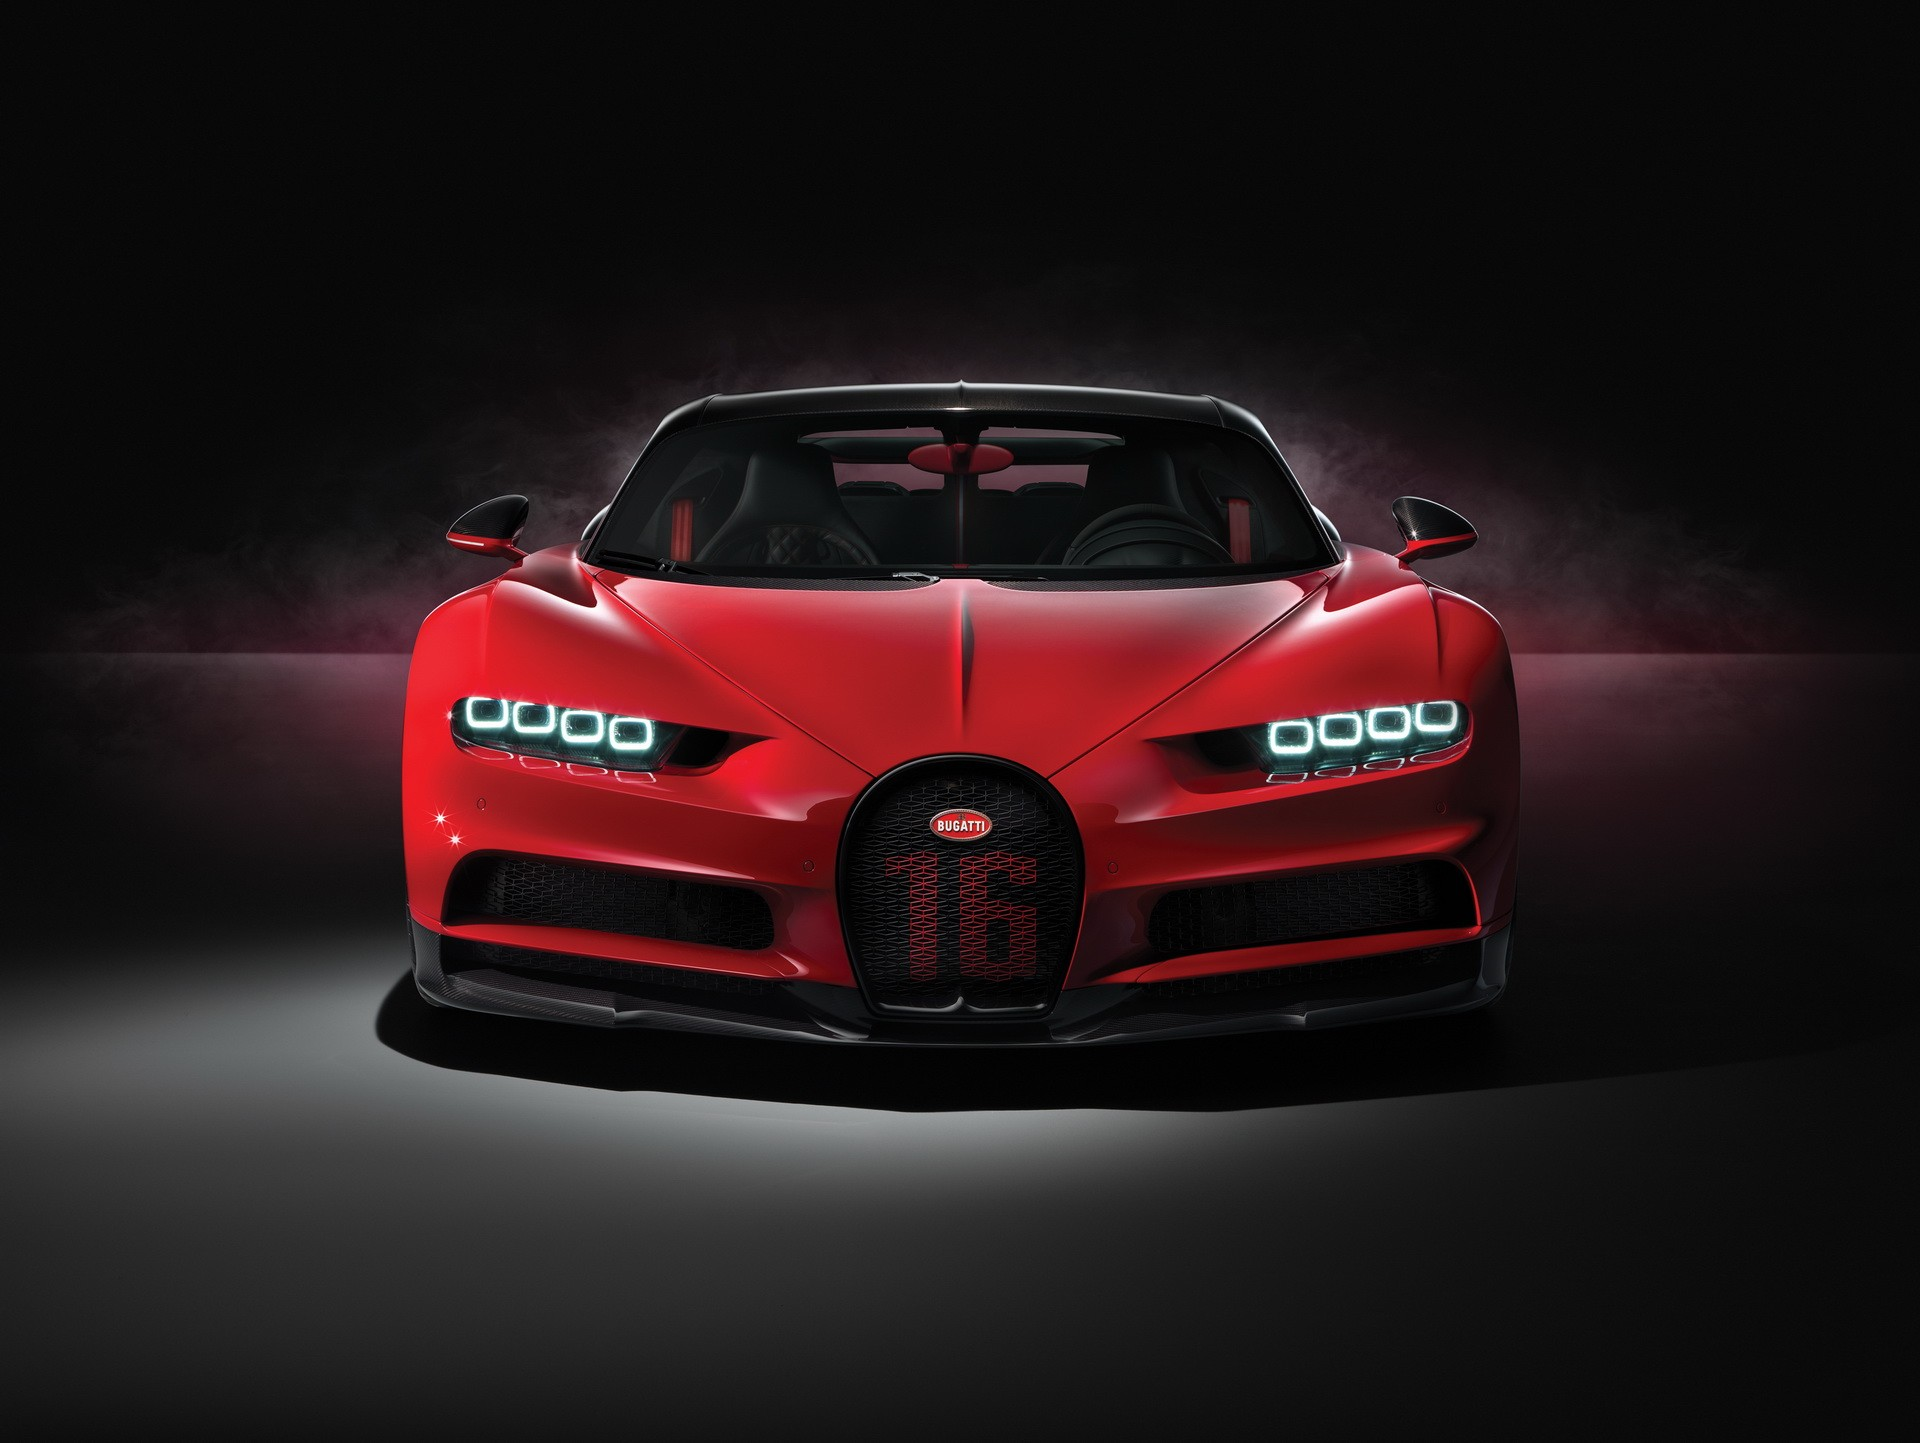 New Bugatti Chiron Divo Rumored To Be More Extreme Than Chiron Sport